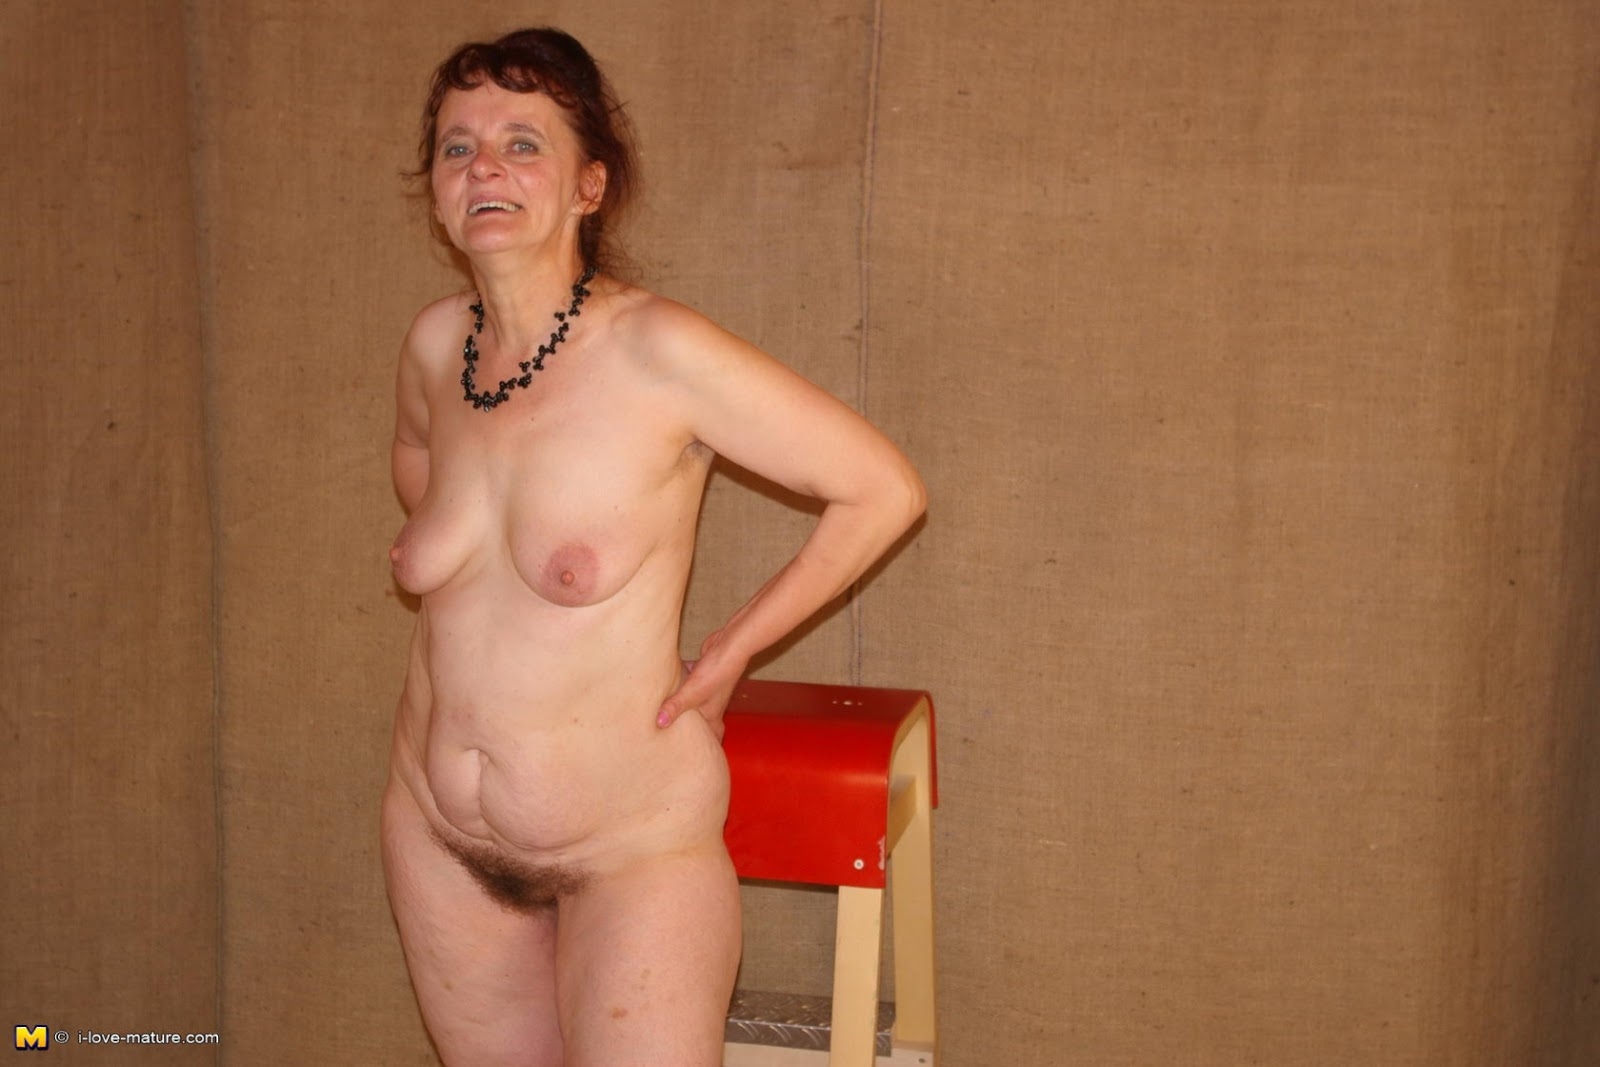 I love mature ladies